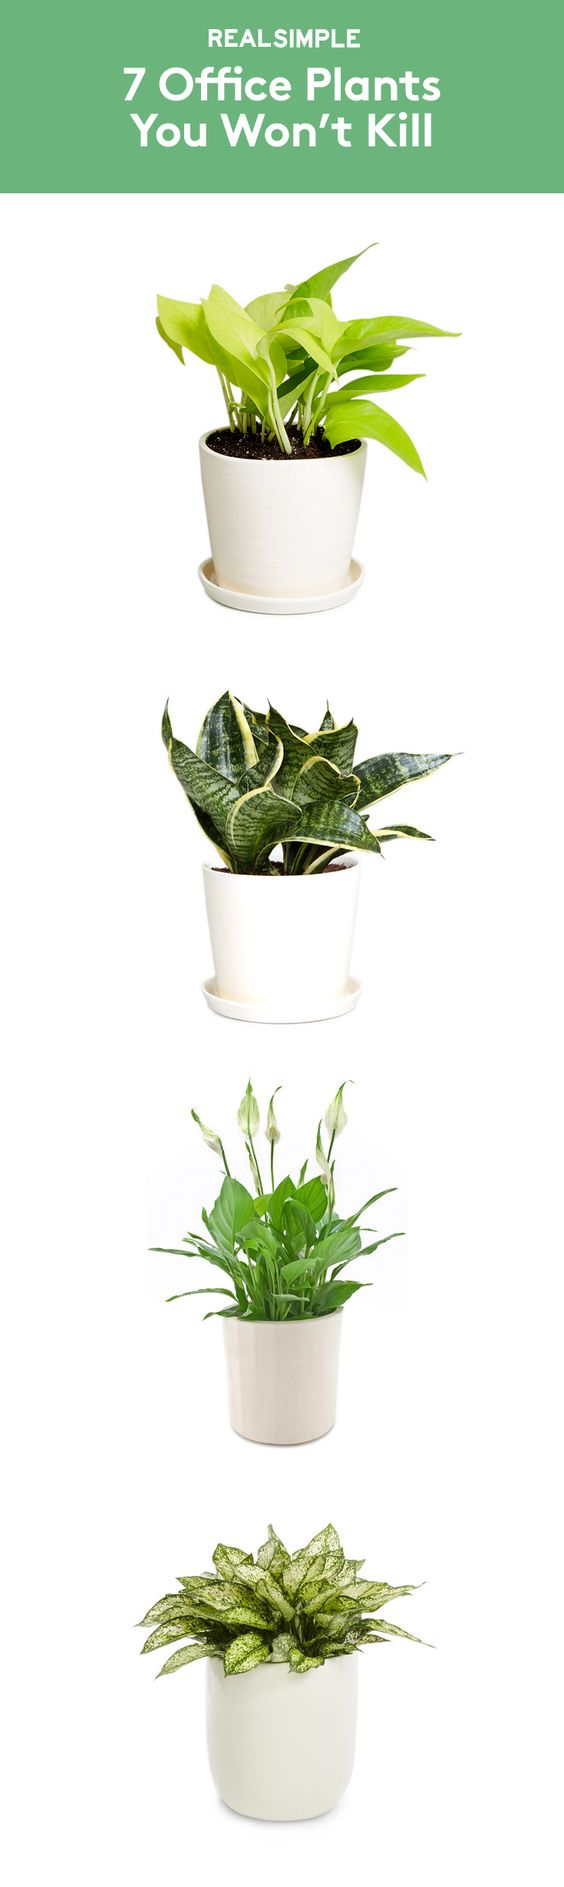 7 office plants you won t kill kantoren planten en for Best office plans